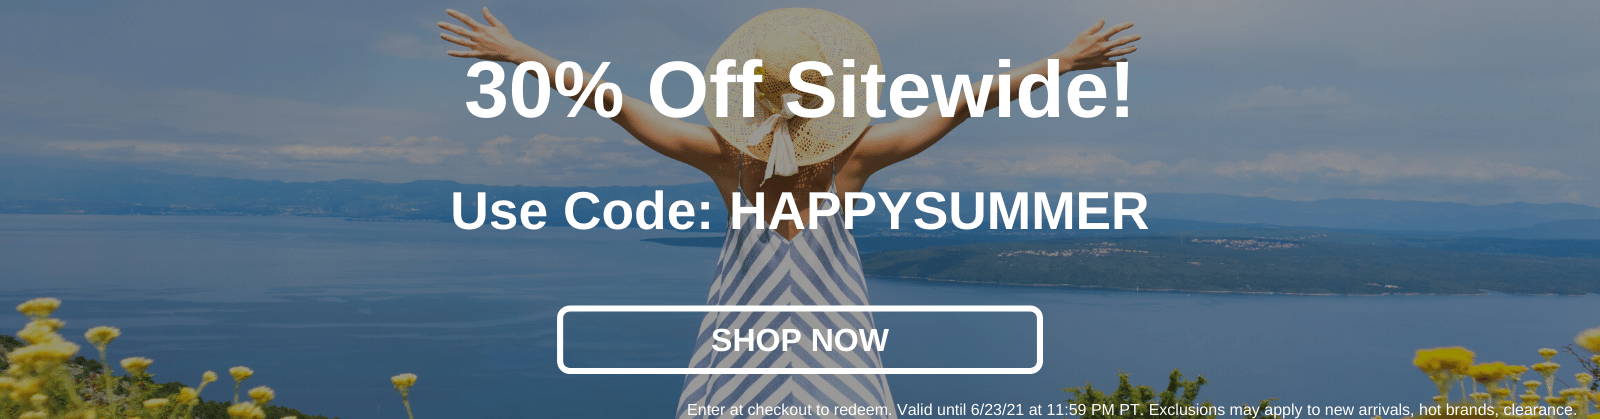 30% off site wide! Use code: HAPPYSUMMER [Shop Now]